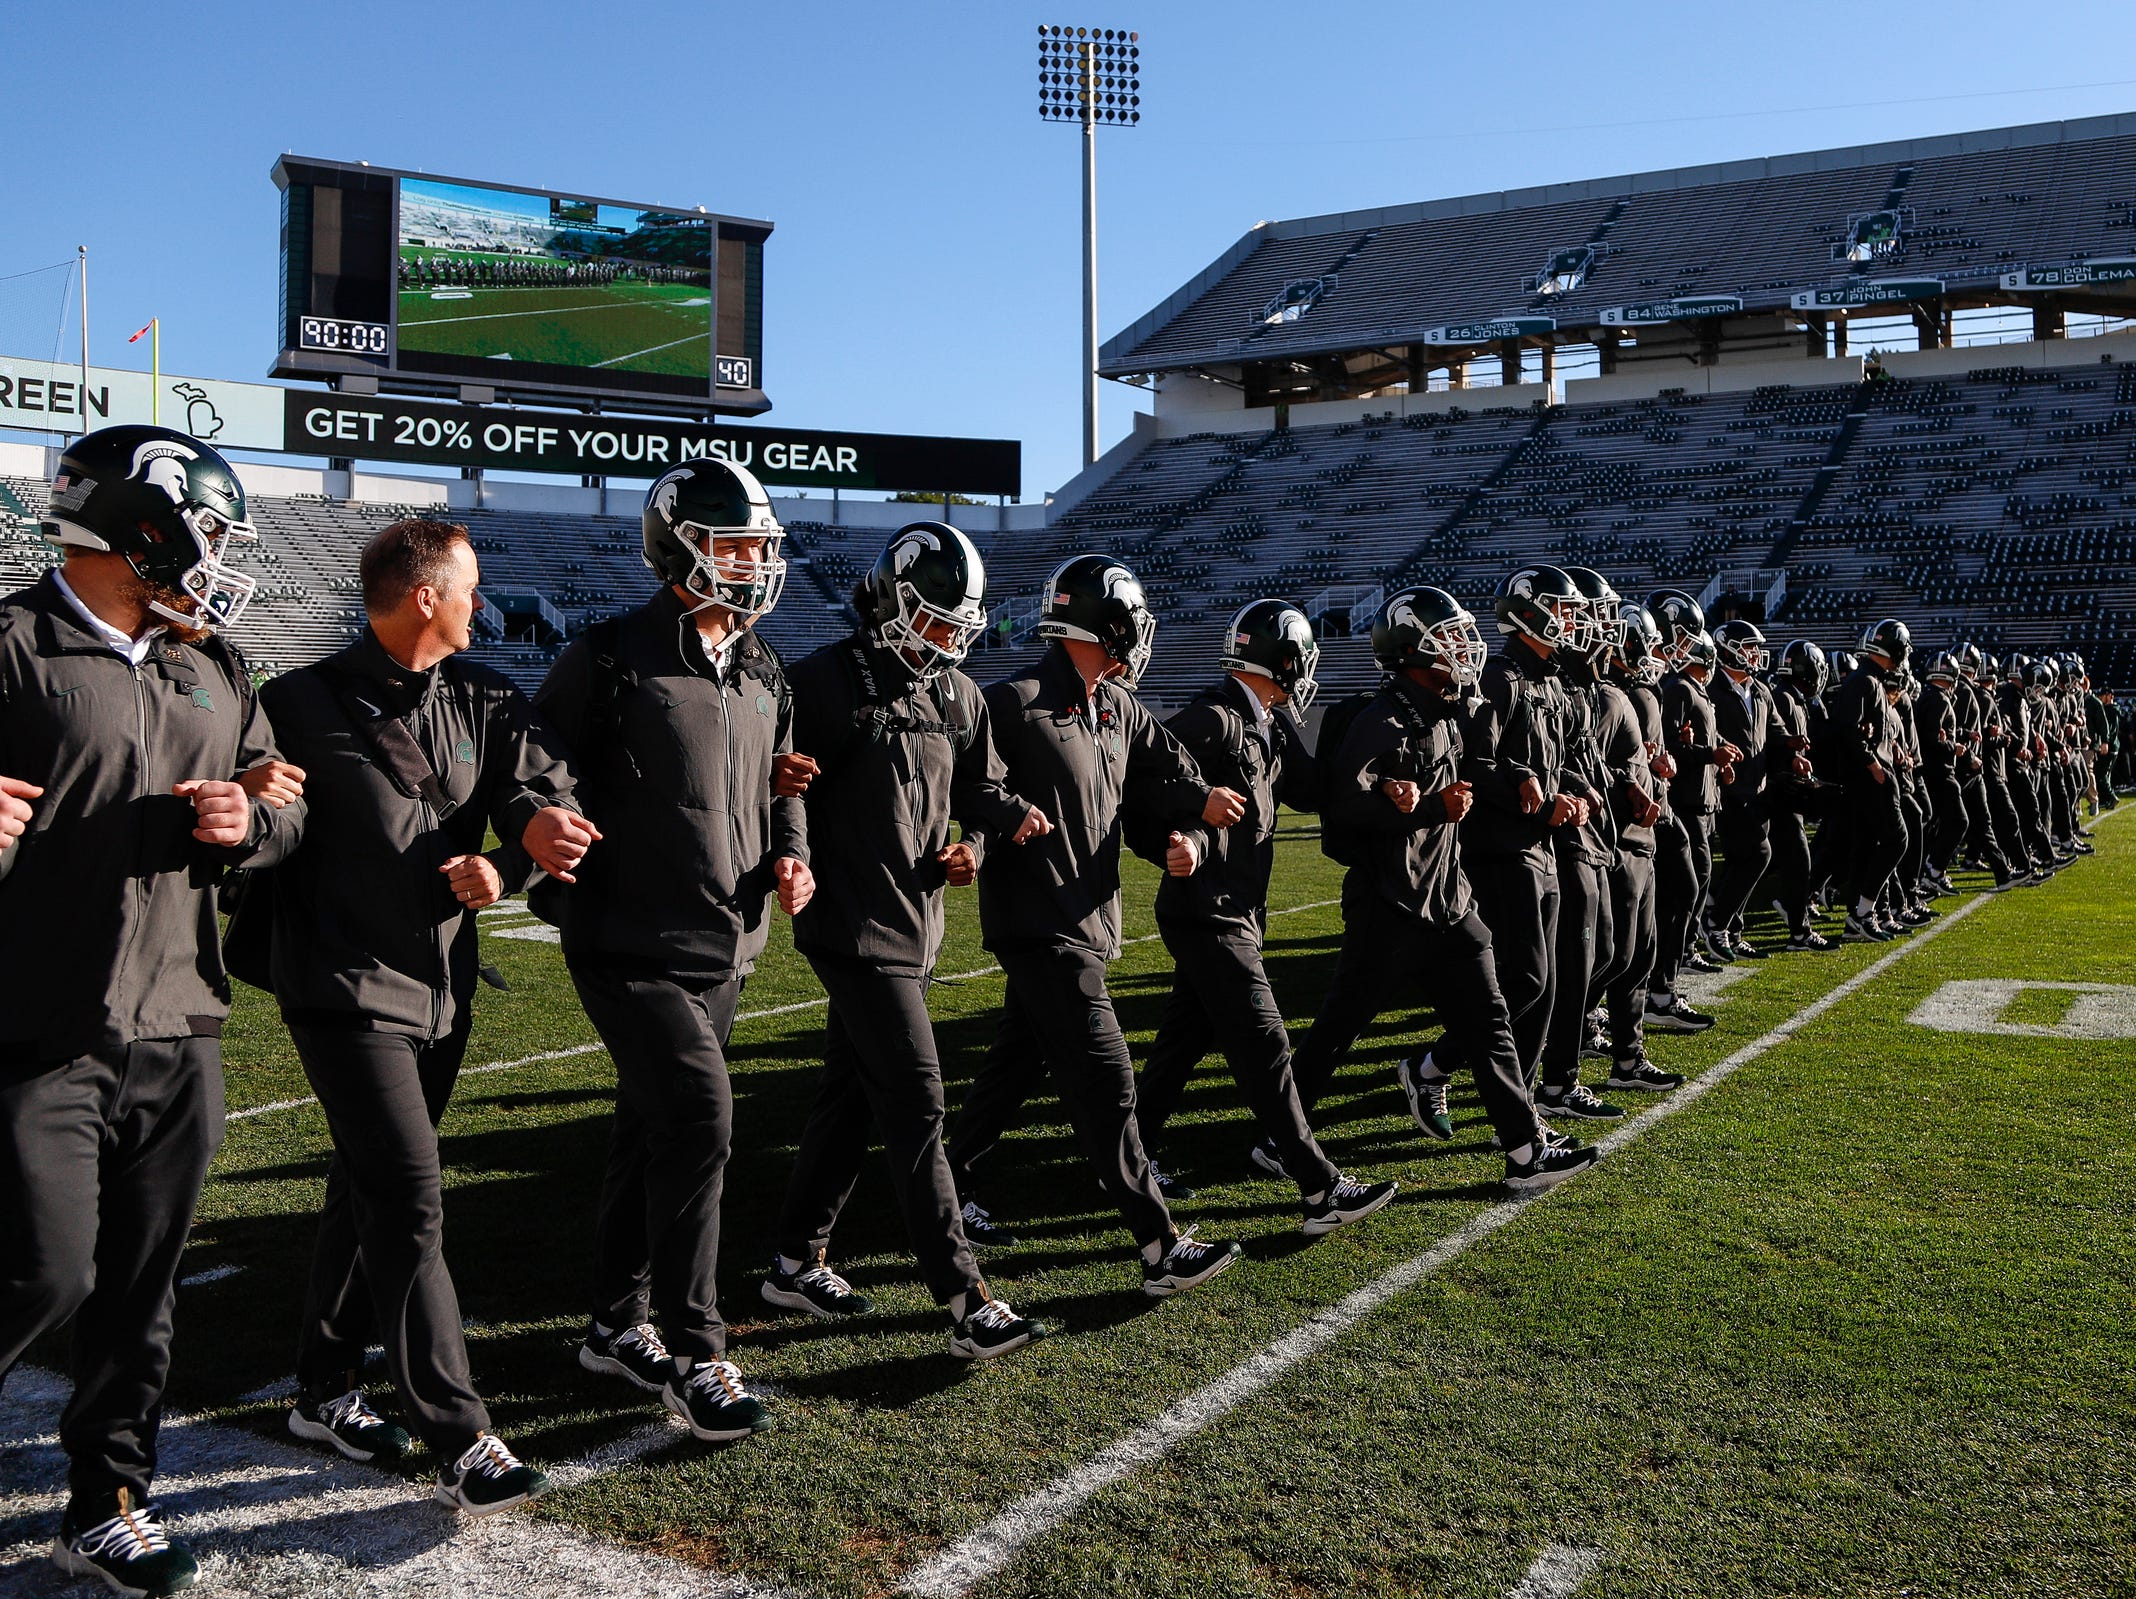 Michigan State players lock arms and walk across the field before the Michigan game at Spartan Stadium on Sat., October 20, 2018.